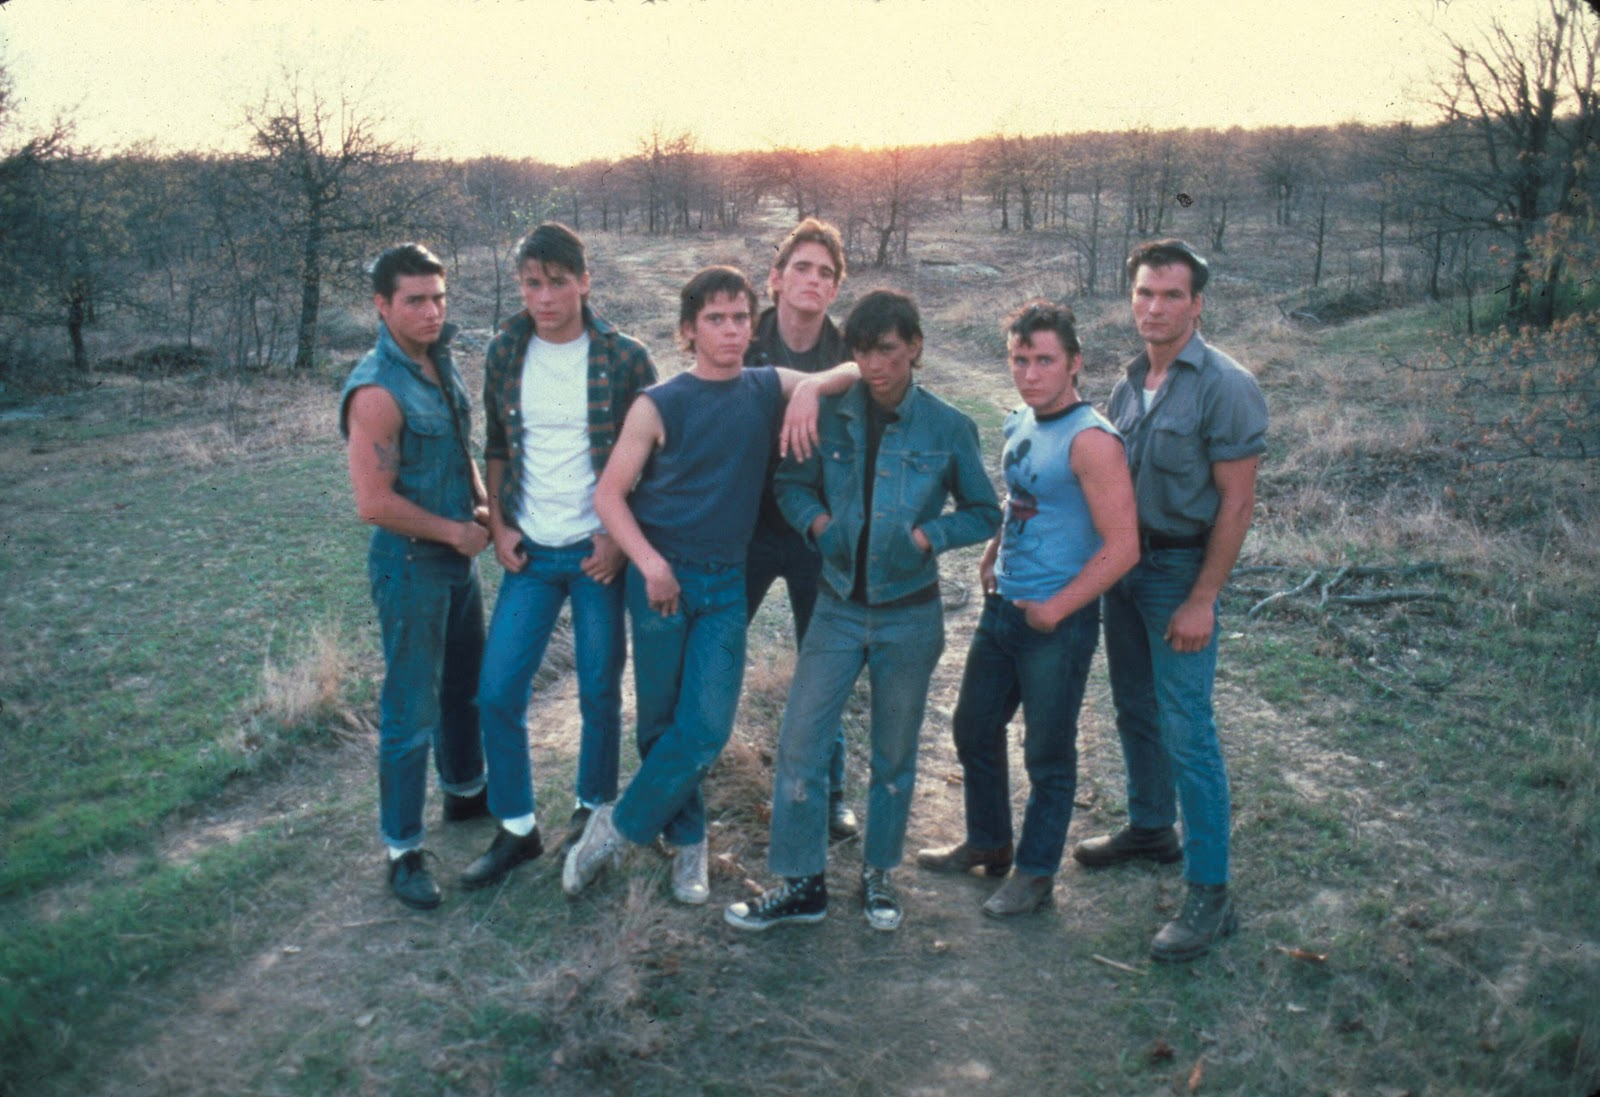 the outsiders The outsiders is about two weeks in the life of a 14-year-old boy the novel tells the story of ponyboy curtis and his struggles with right and wrong in a society in which he believes that he is an outsider ponyboy and his two brothers — darrel (darry), who is 20, and sodapop, who is 16 — have.